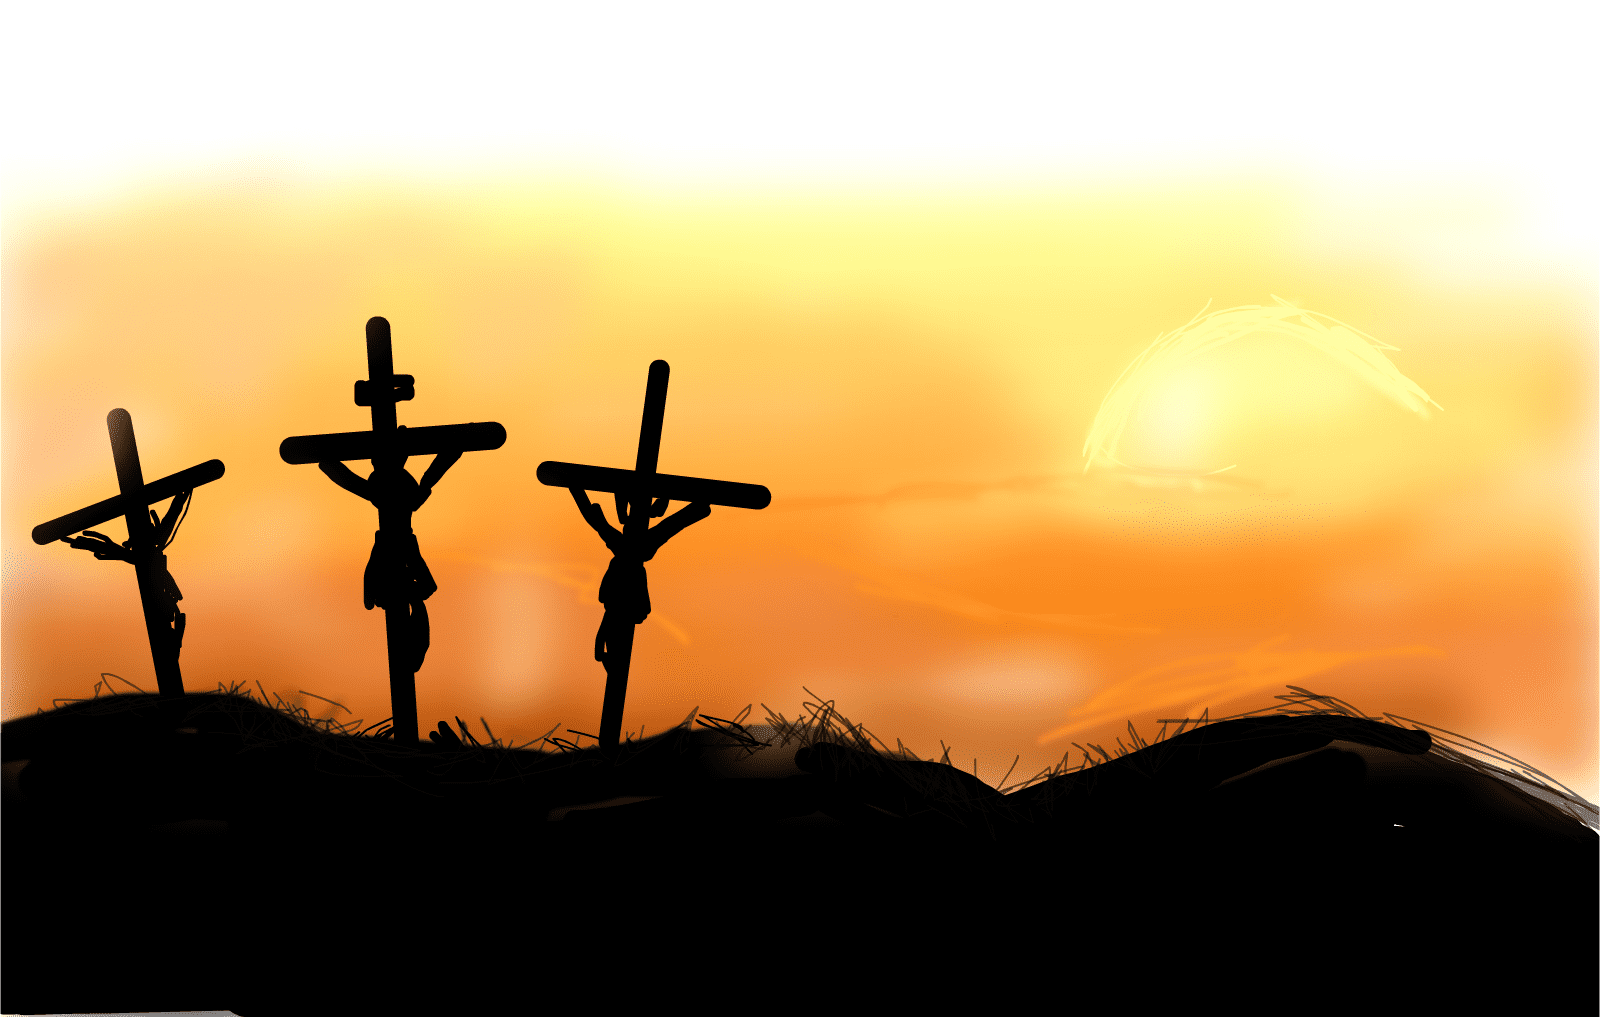 The Unvailed Facts About The Crucifixion